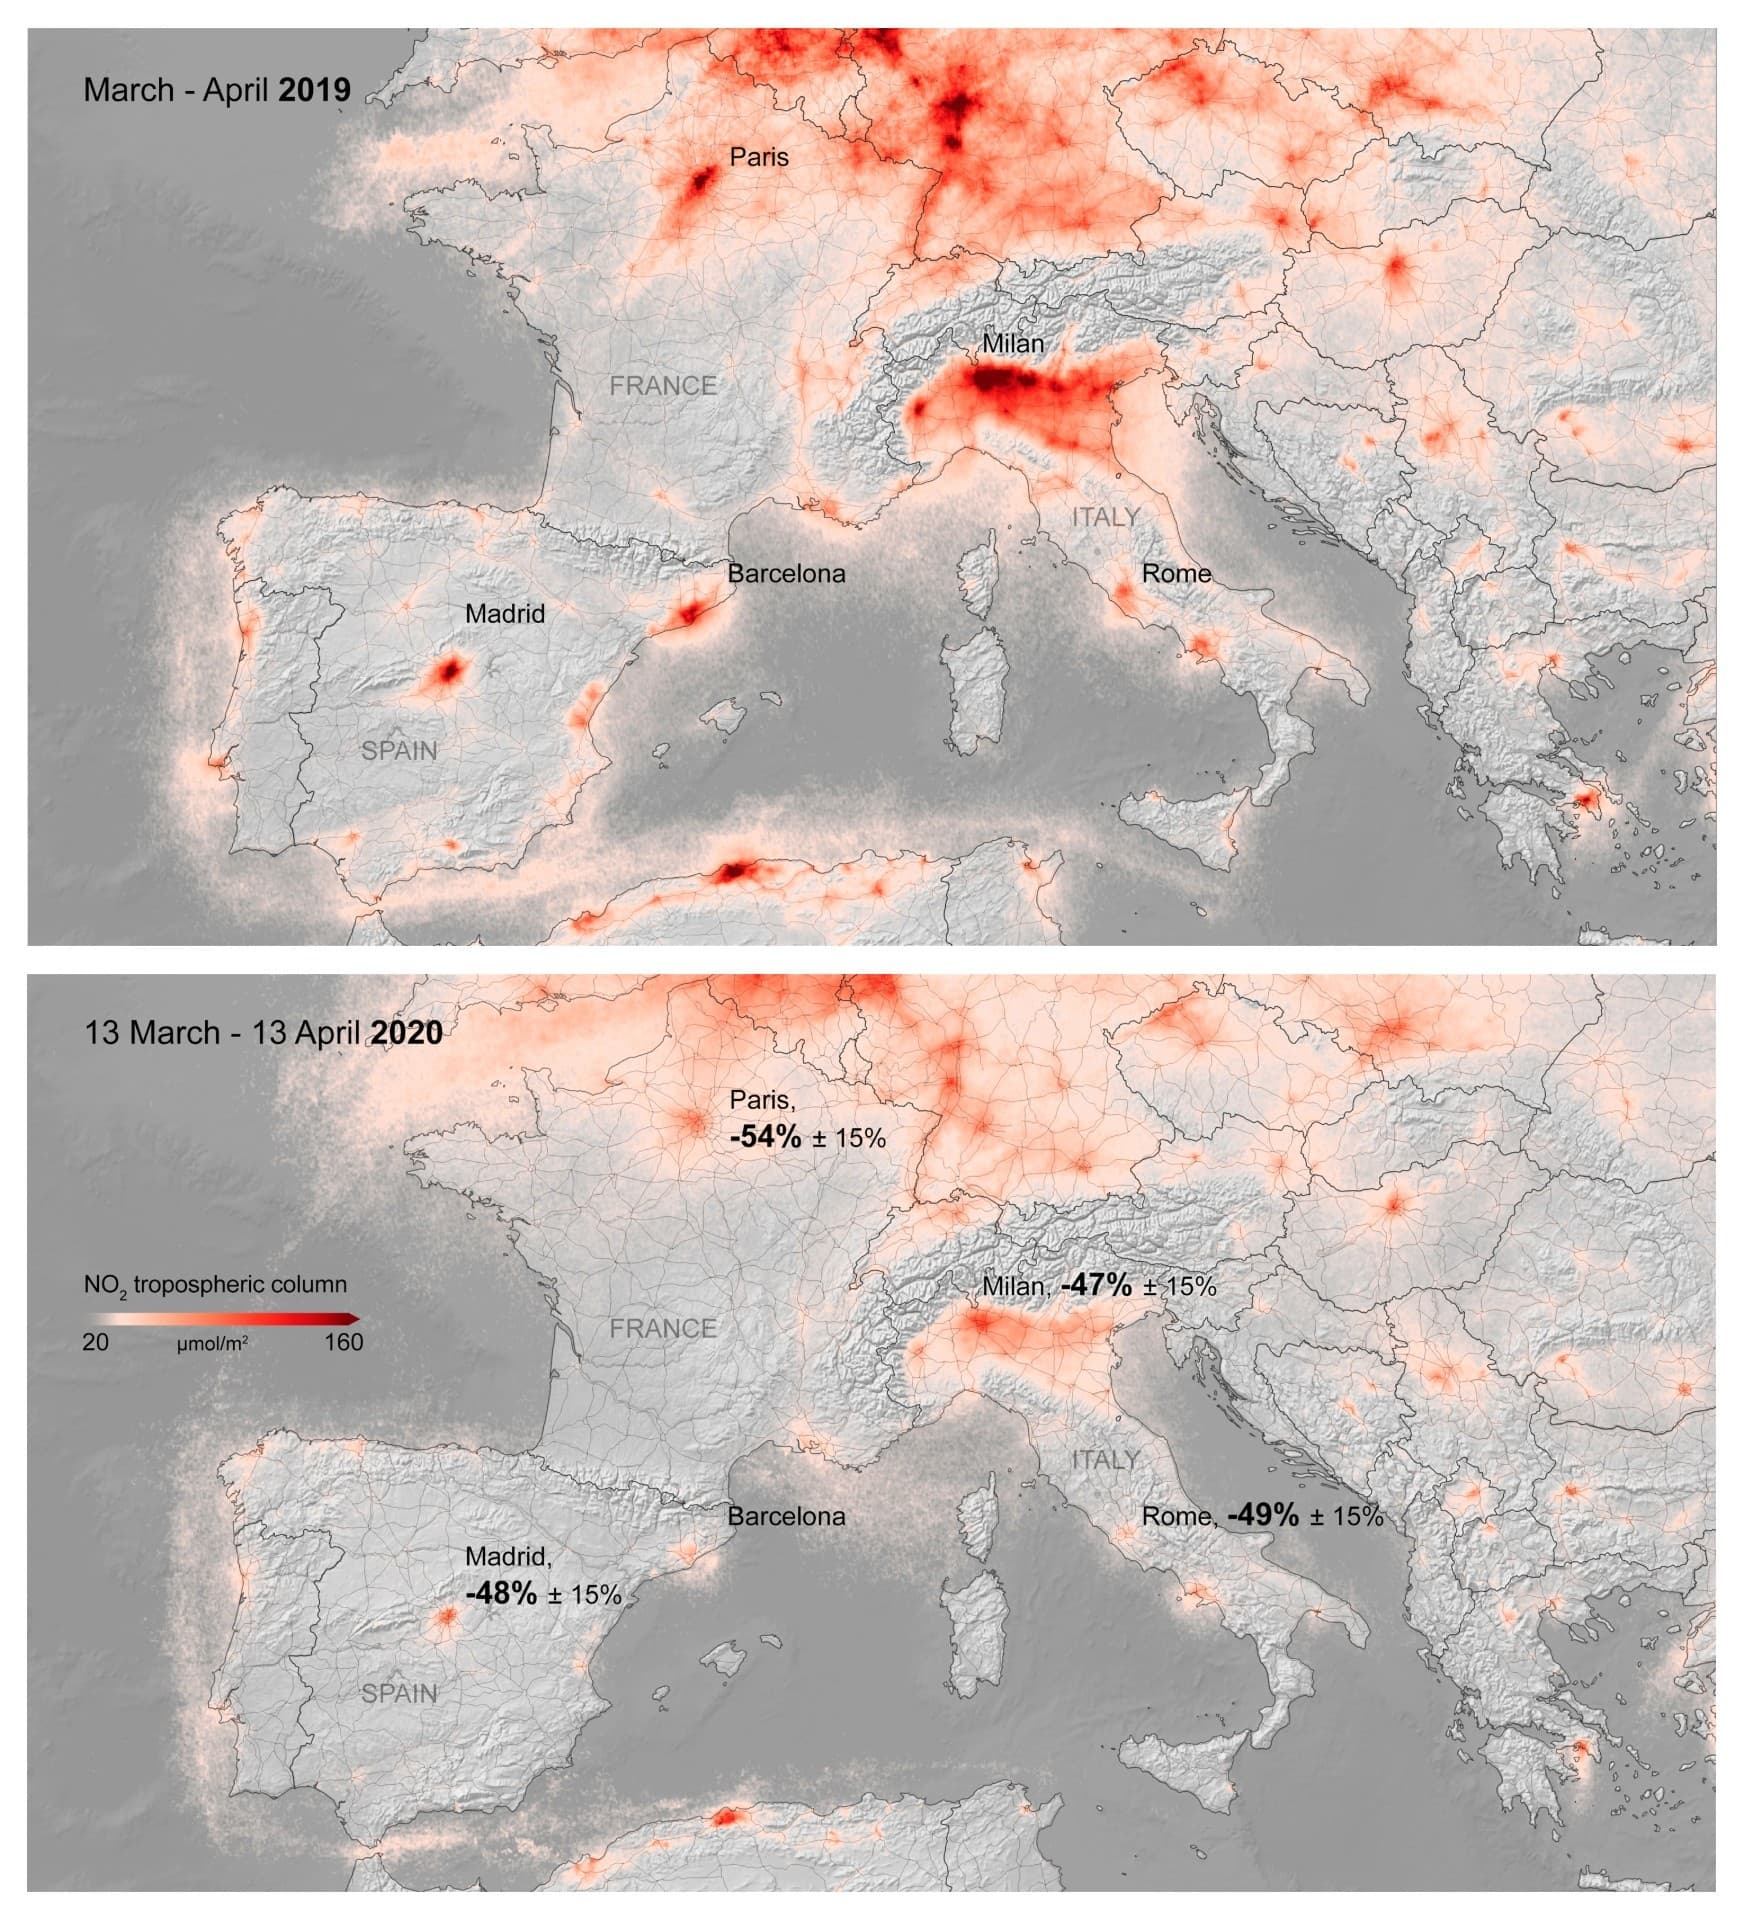 These maps made available by the Royal Netherlands Meteorological Institute and European Space agency show the average nitrogen dioxide concentrations over Europe in March-April 2019, top, and from March 13-April 13, 2020 during a lockdown against Covid-19. — AP